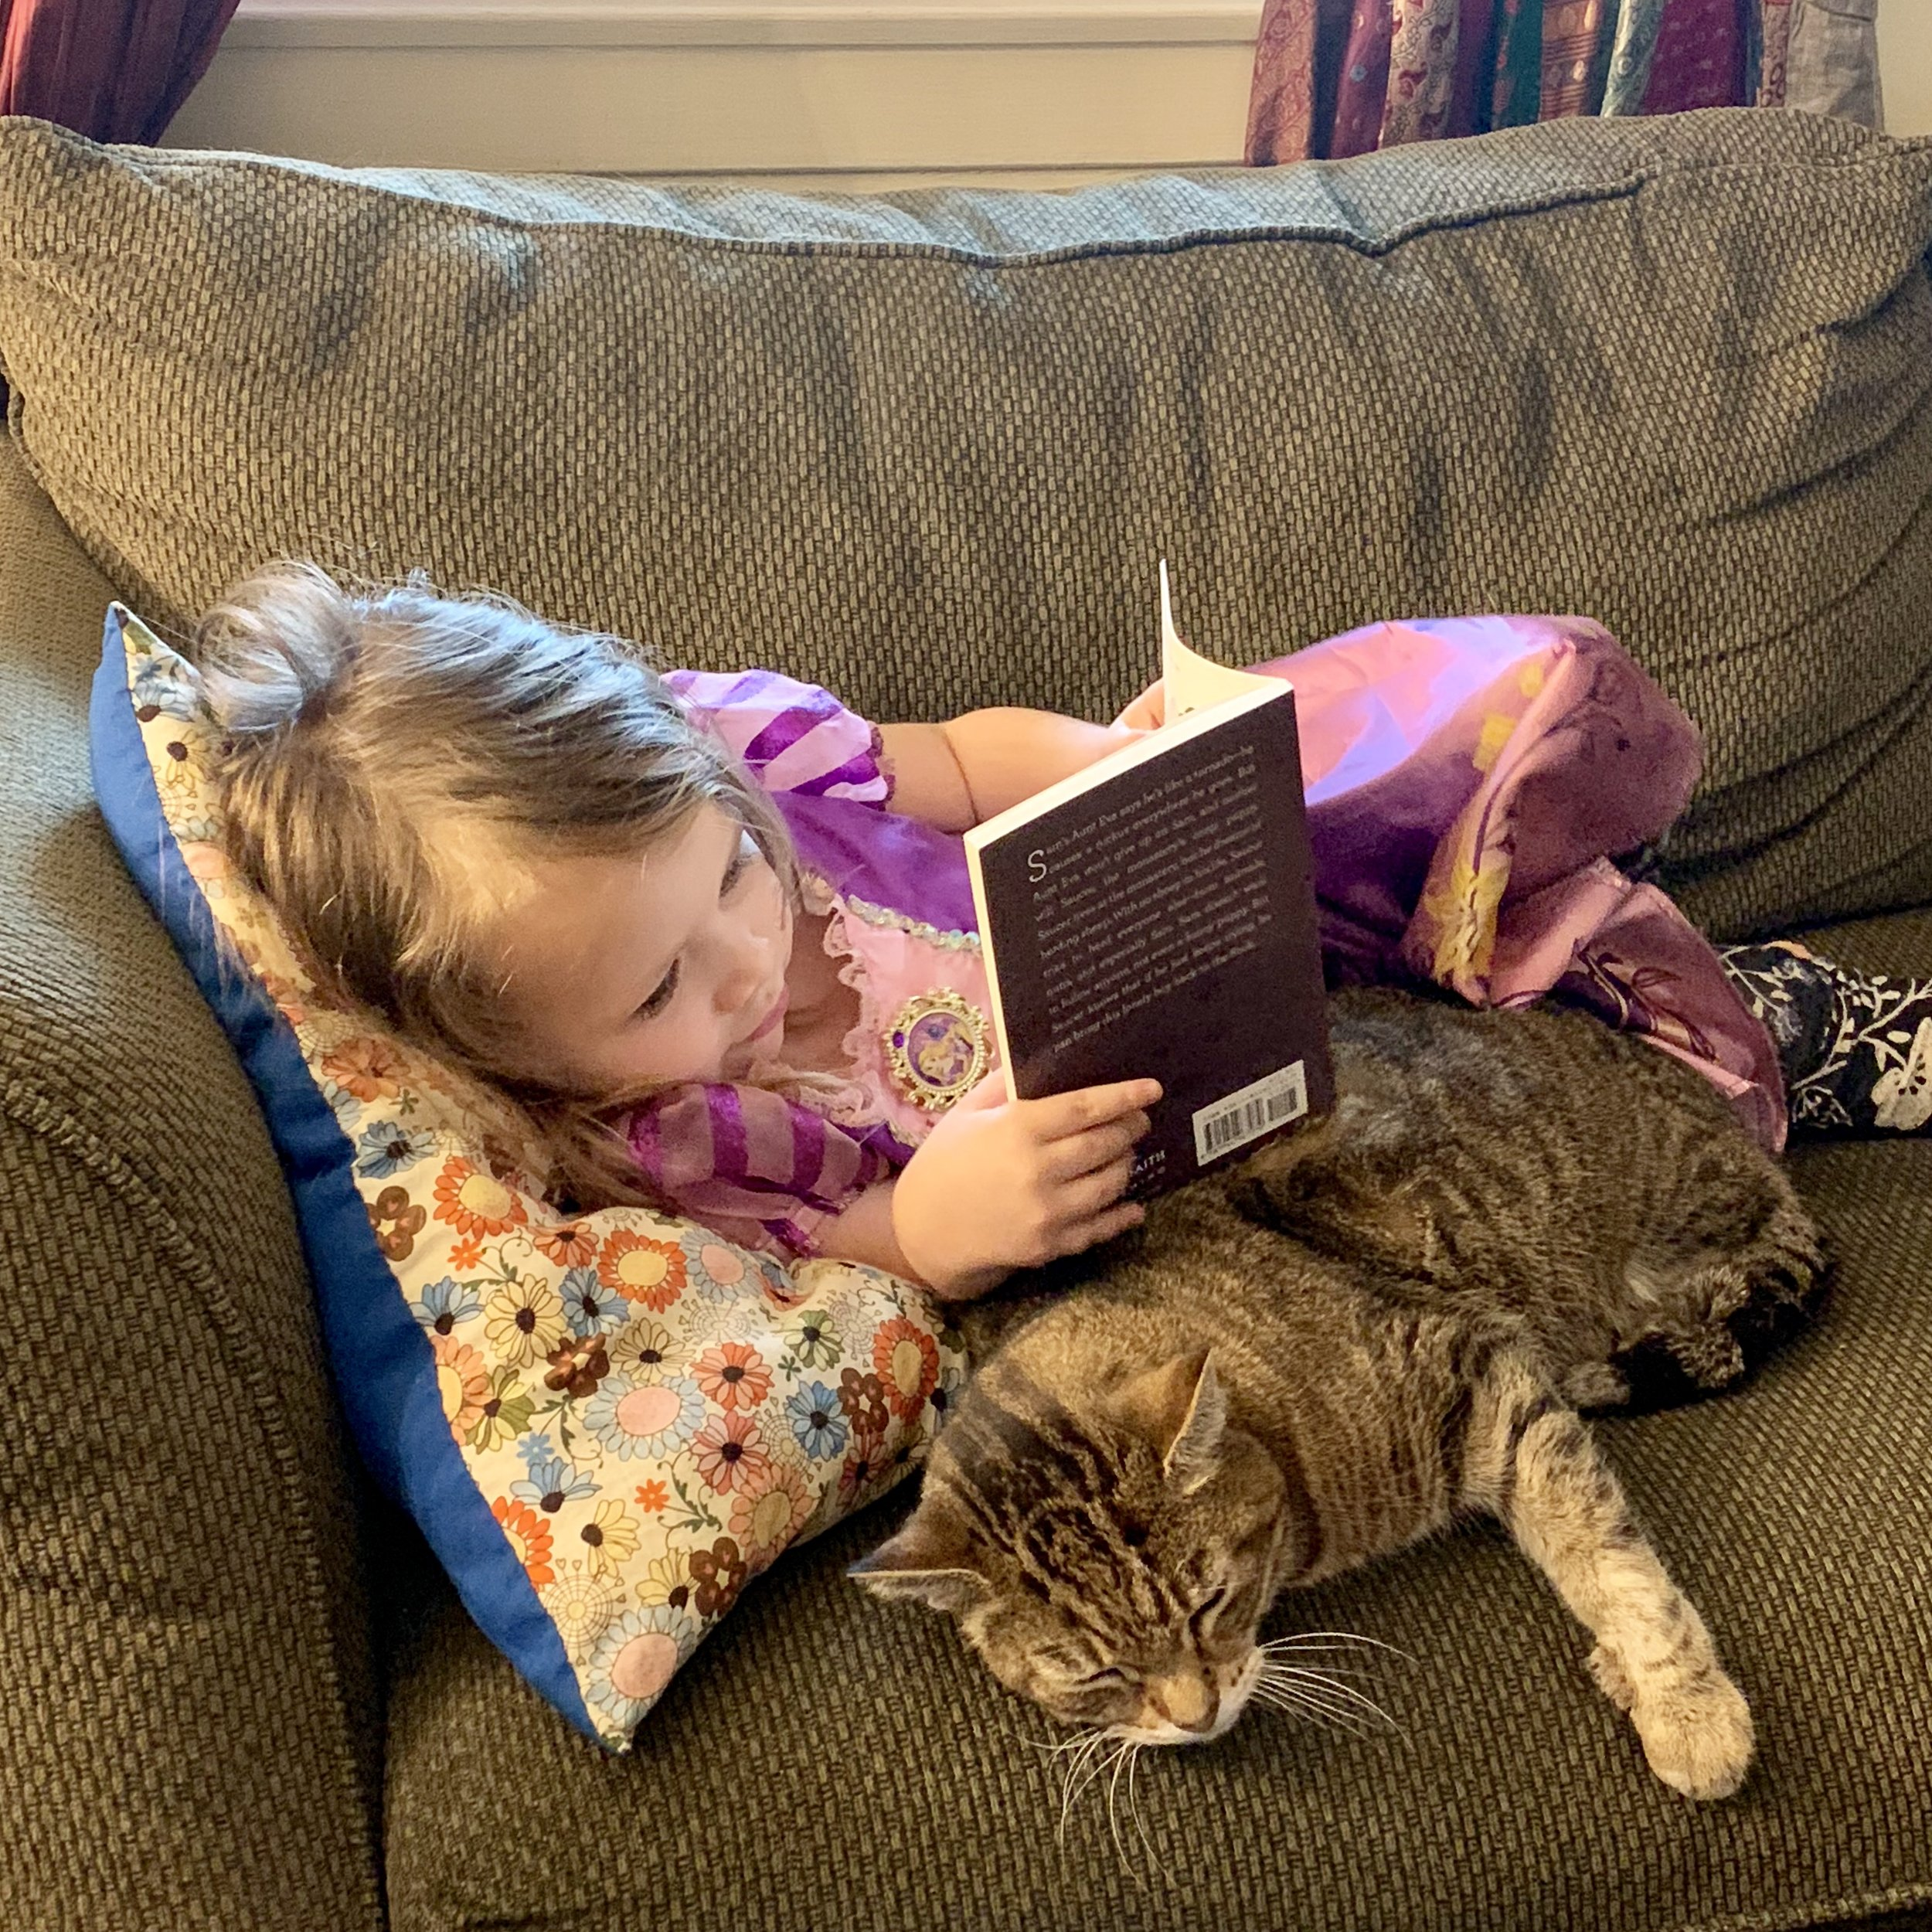 Disclaimer: My 3 year old is definitely NOT reading herself a chapter book— she just enjoys the pictures in the book. And cat snuggles.